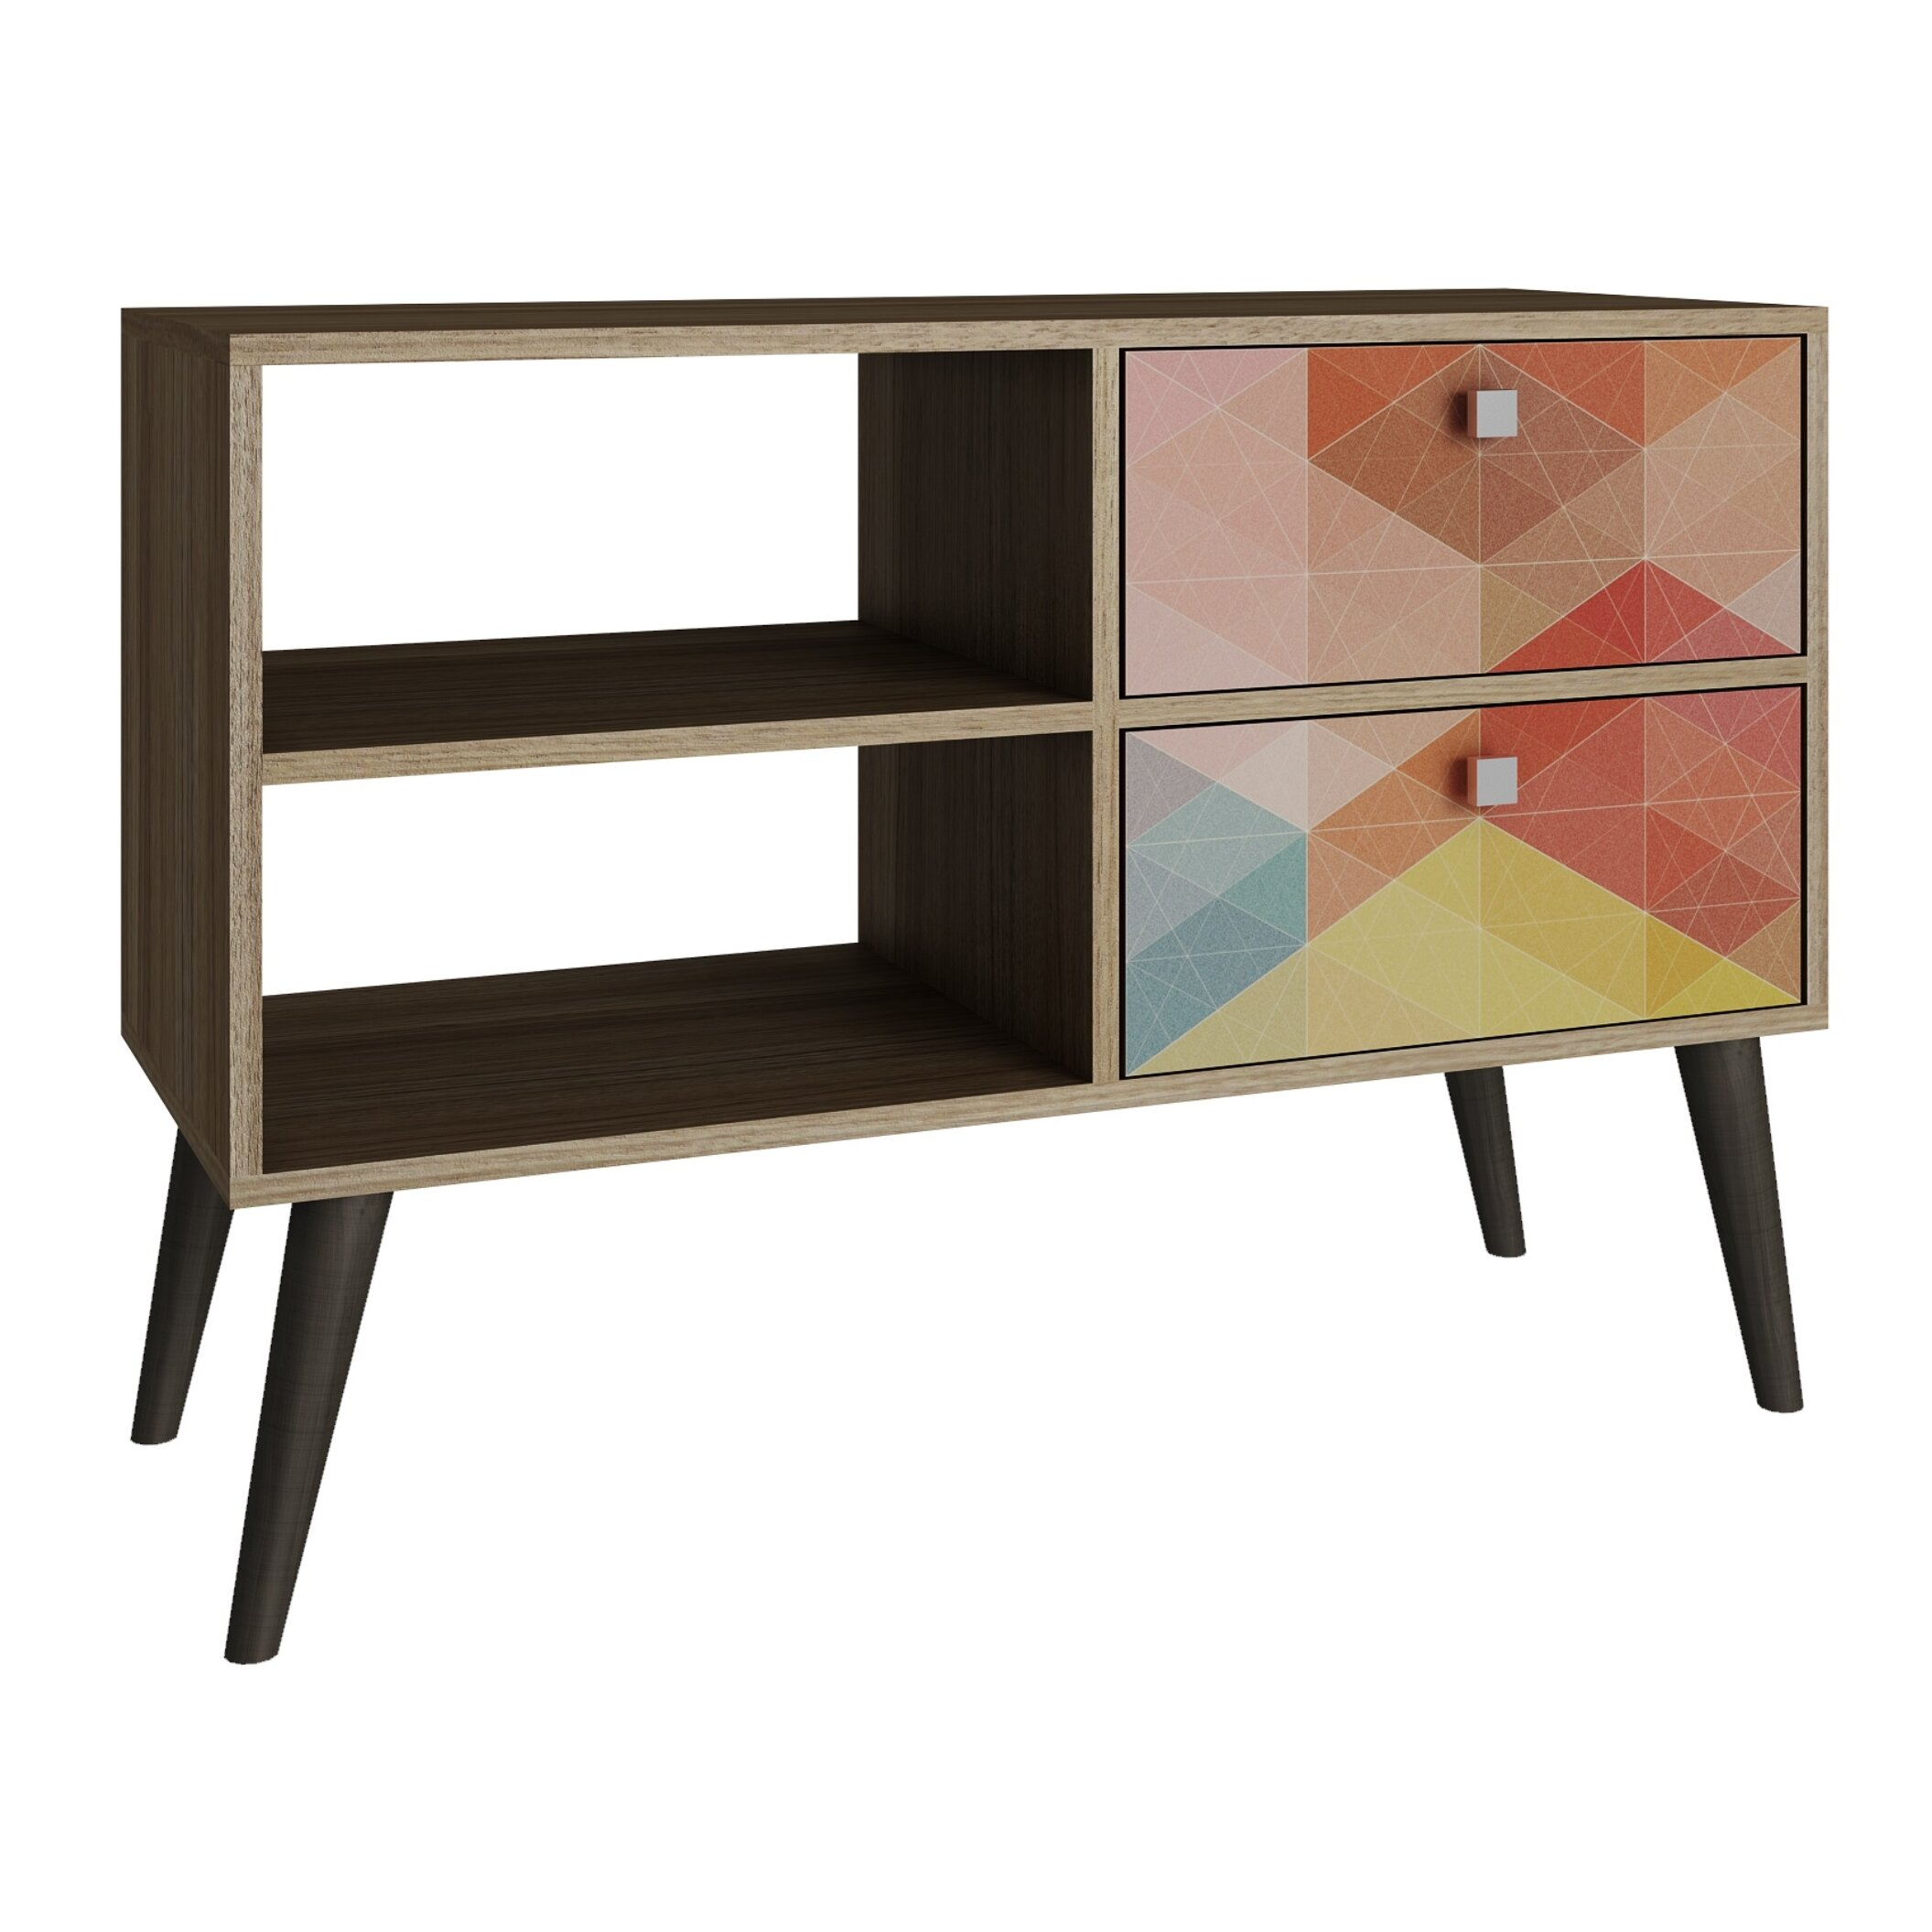 Varick gallery o 39 hare tv stand reviews wayfair - Mueble television vintage ...